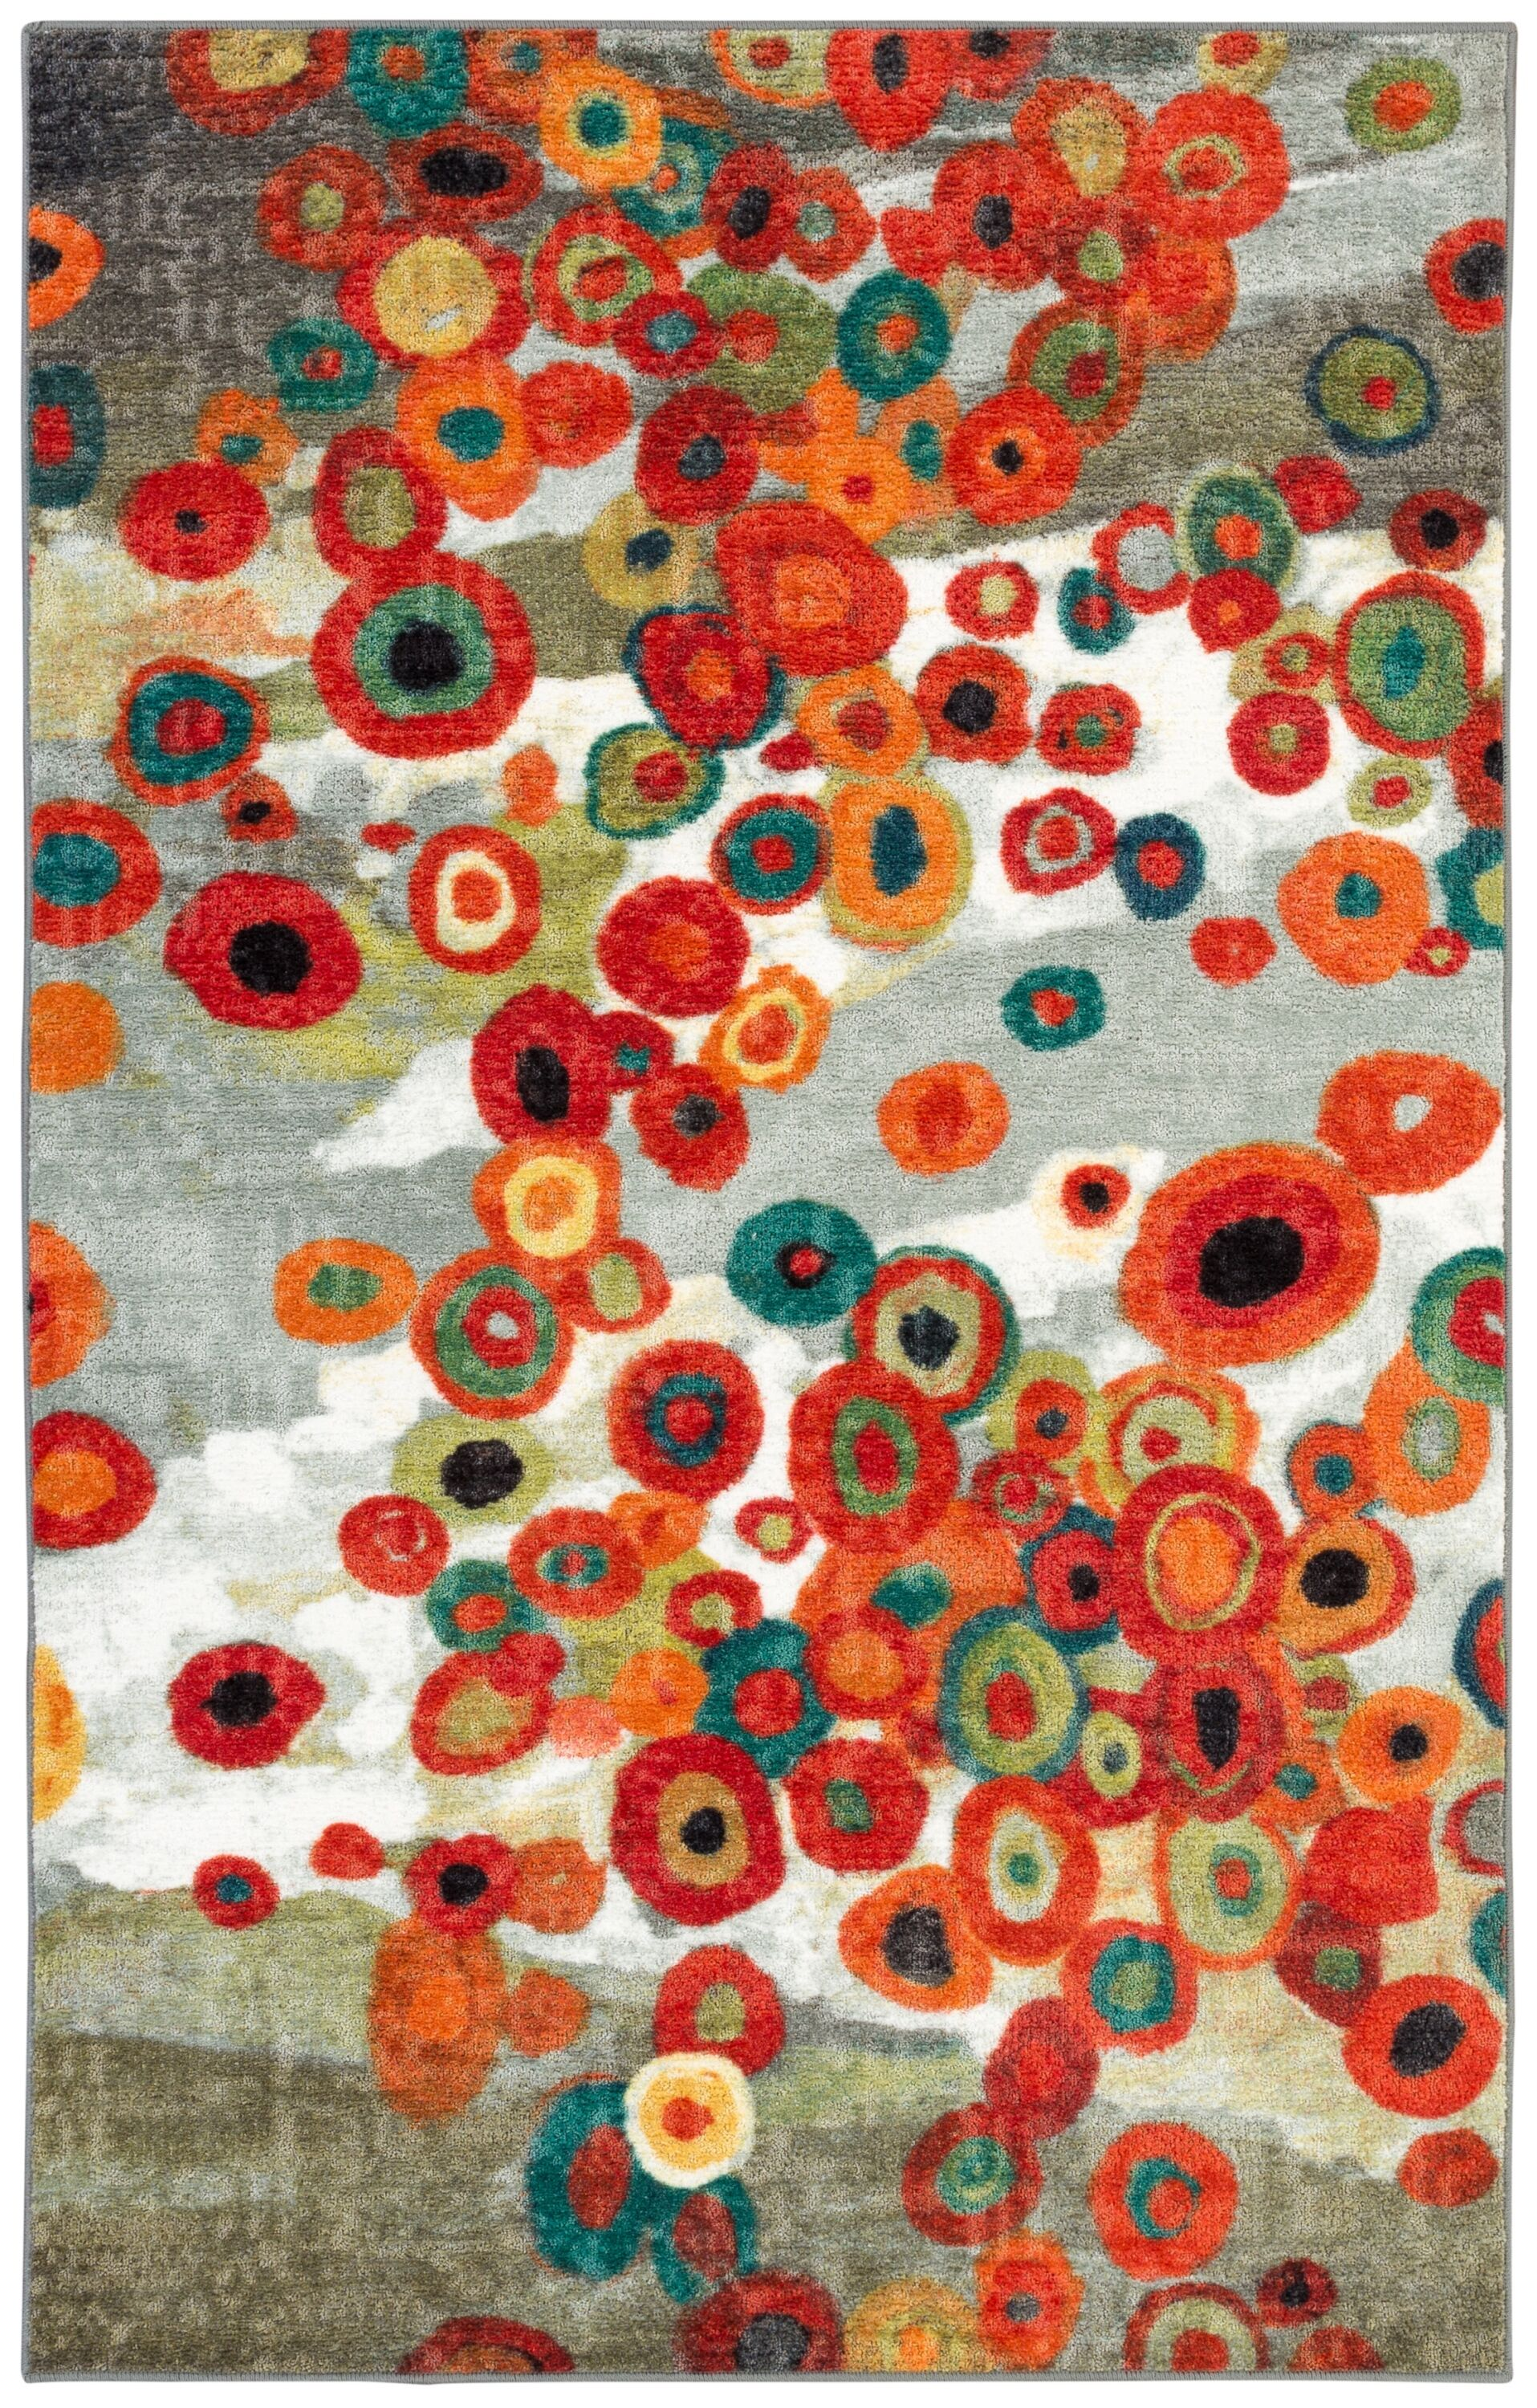 Adaline Tossed Floral Multi Printed Area Rug Rug Size: Rectangle 8' x 10'